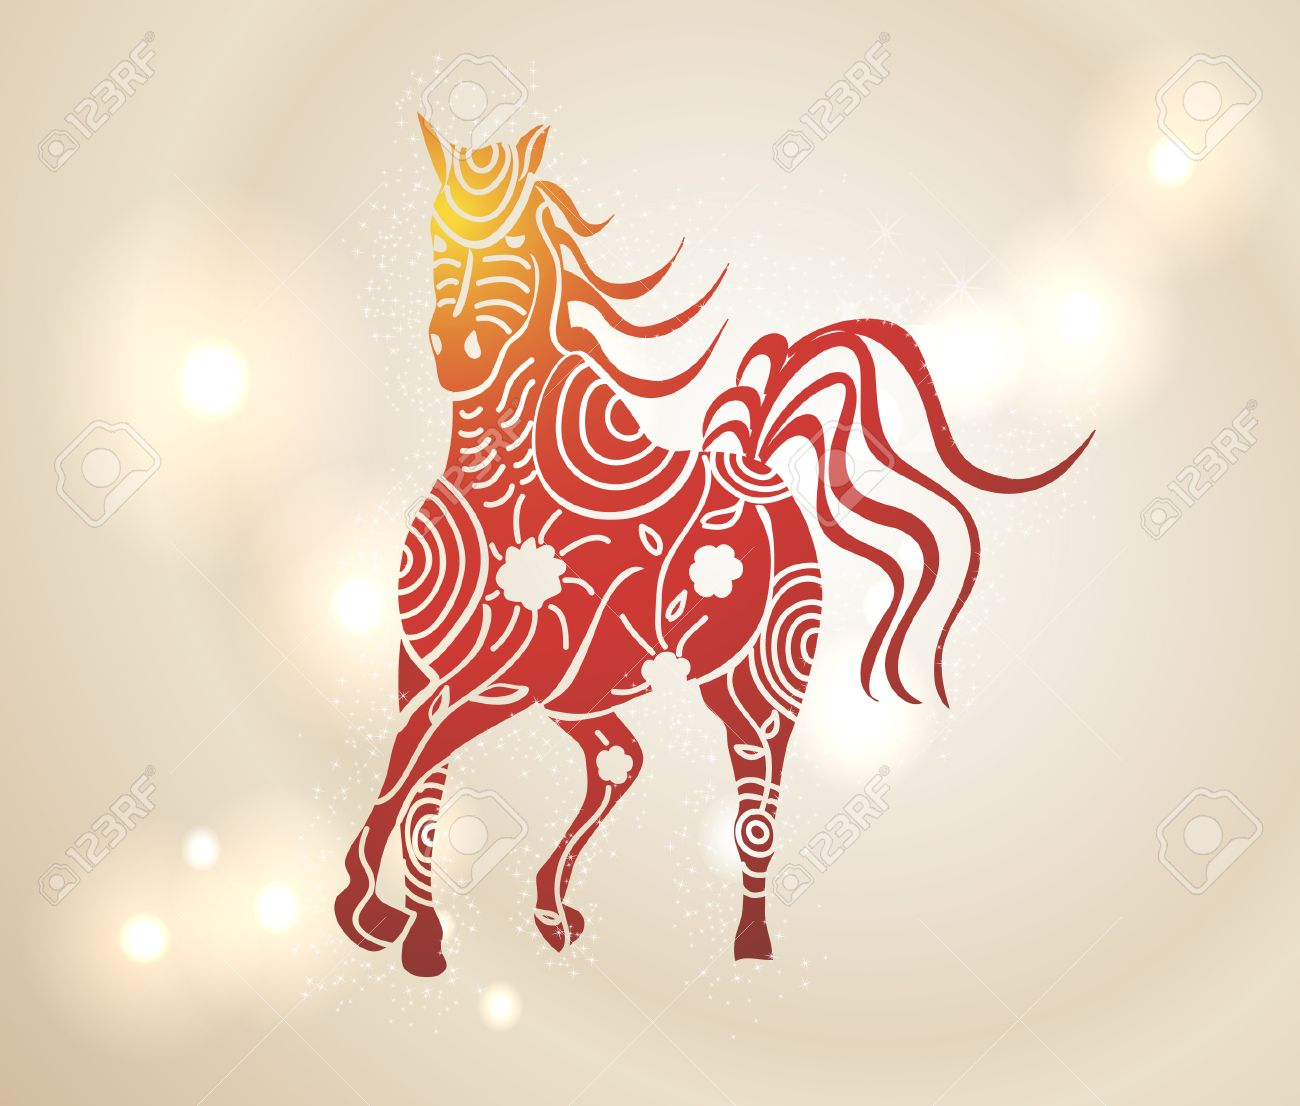 chinese new year 2014 multicolor running horse with tribal flowers design over transparent lights background - Chinese New Year 2014